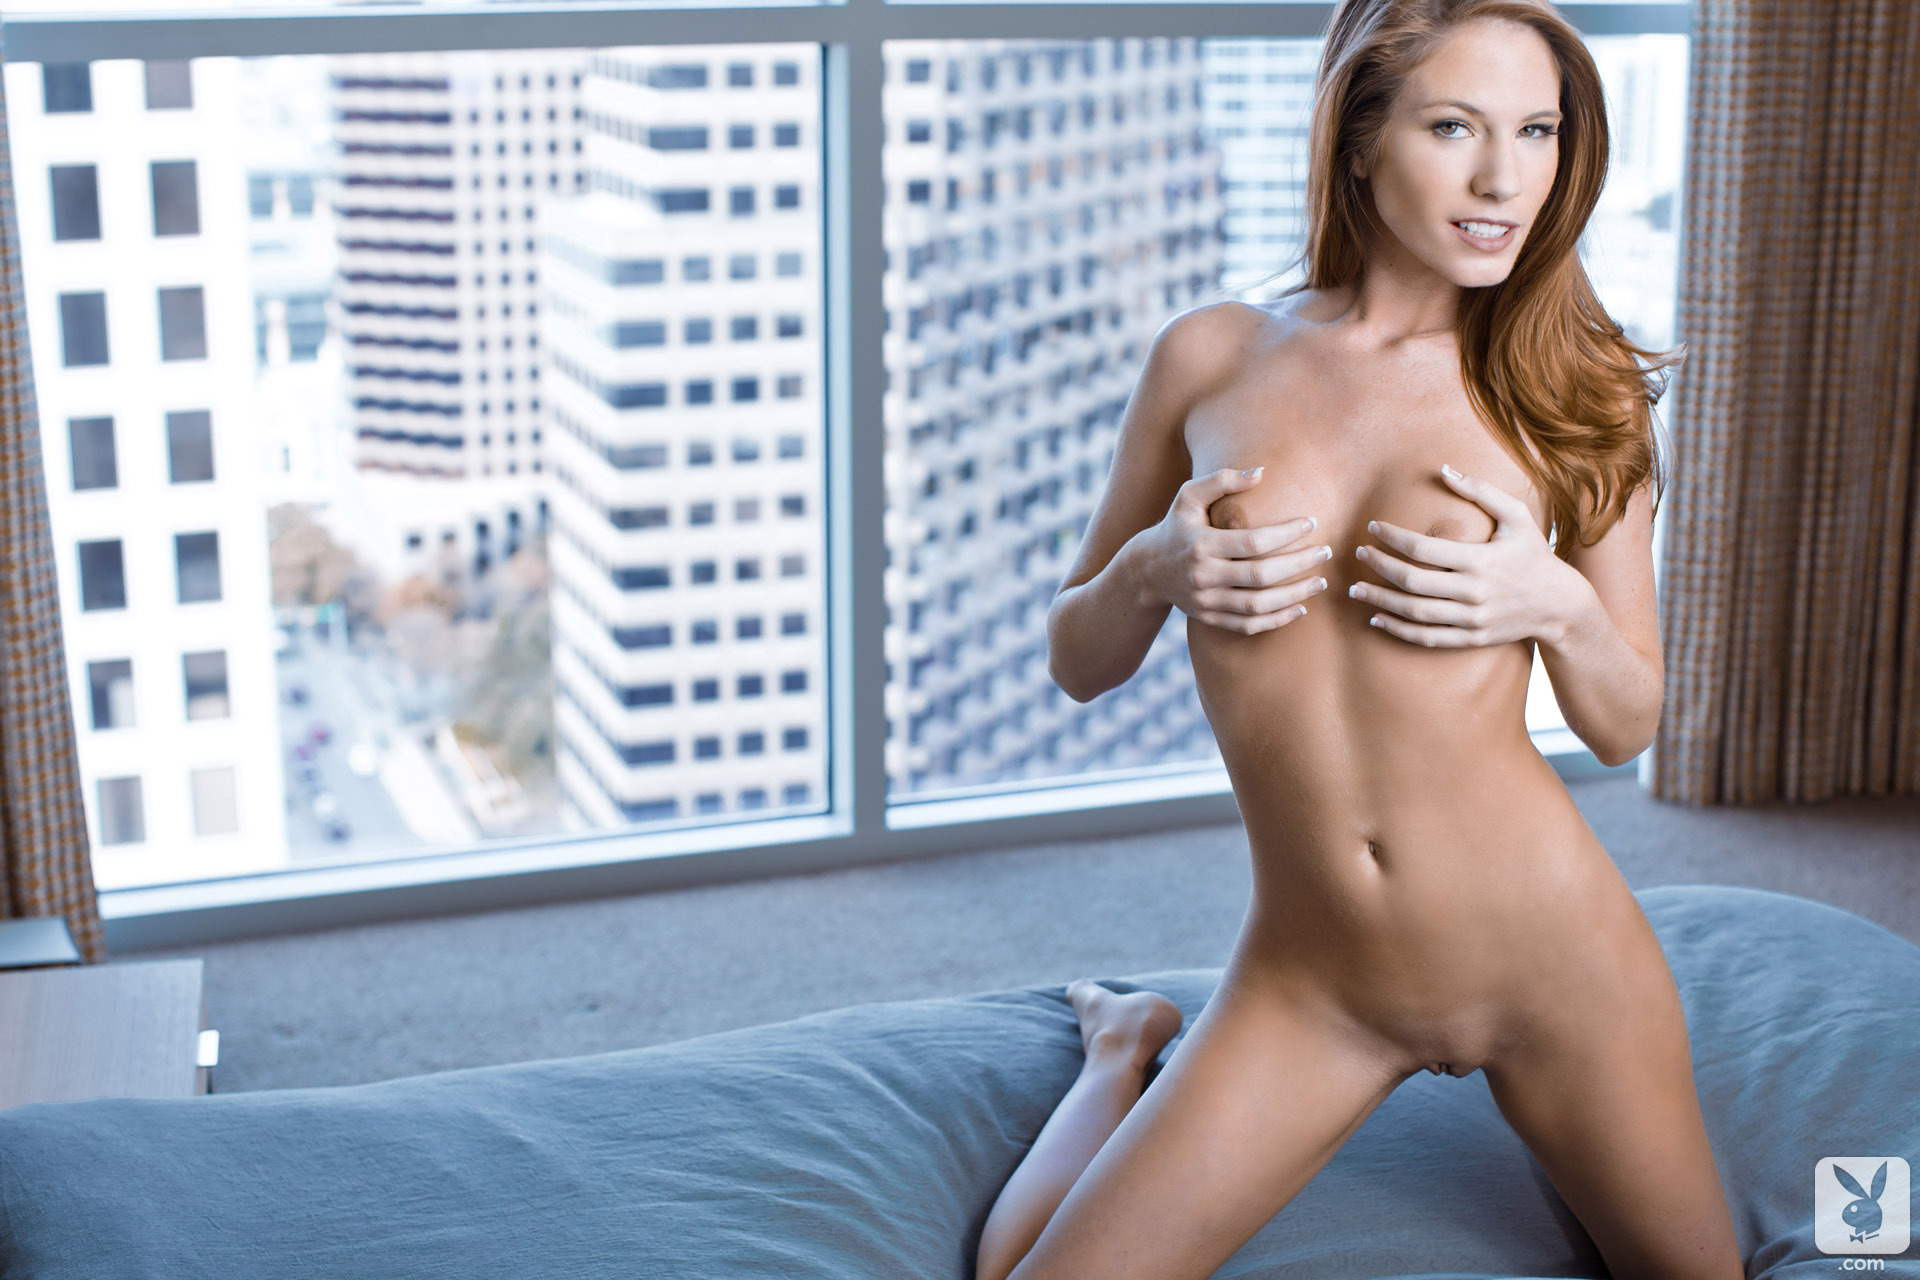 bree-morgan-nude-apartment-redhead-playboy-17